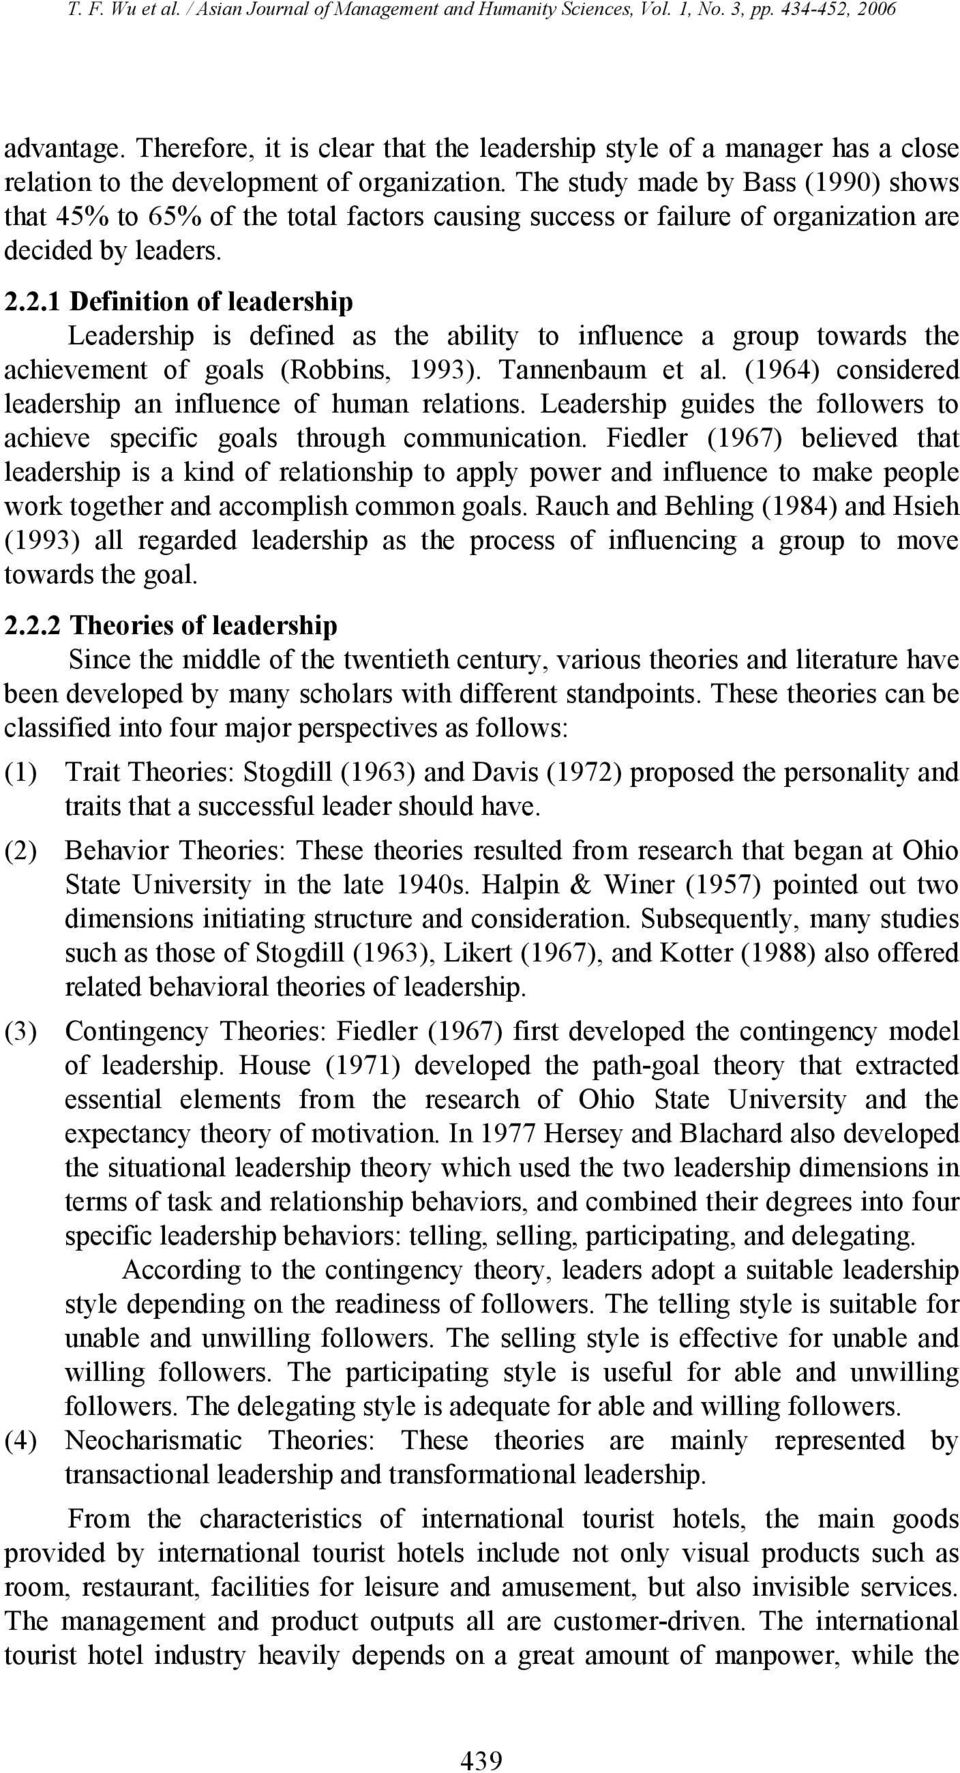 2.1 Definition of leadership Leadership is defined as the ability to influence a group towards the achievement of goals (Robbins, 1993). Tannenbaum et al.